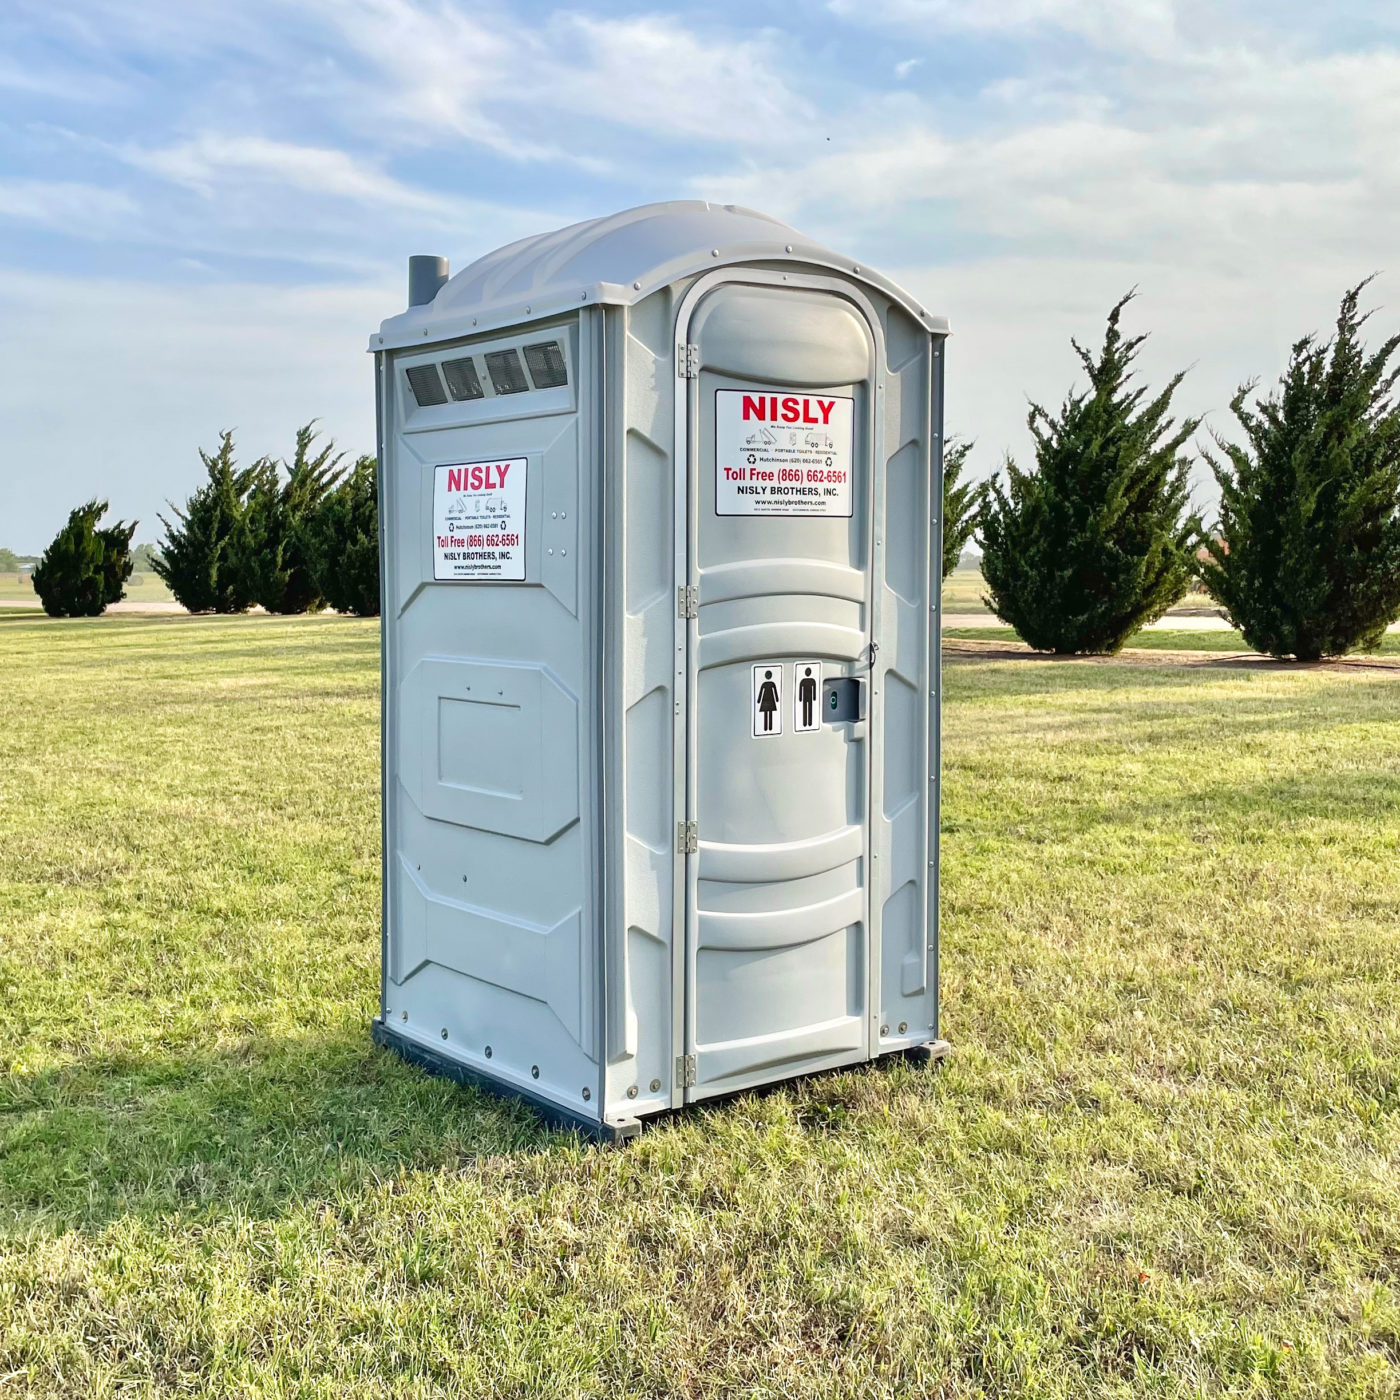 Portable-restroom-for-rent-in-central-kansas-many-porta-potty-available